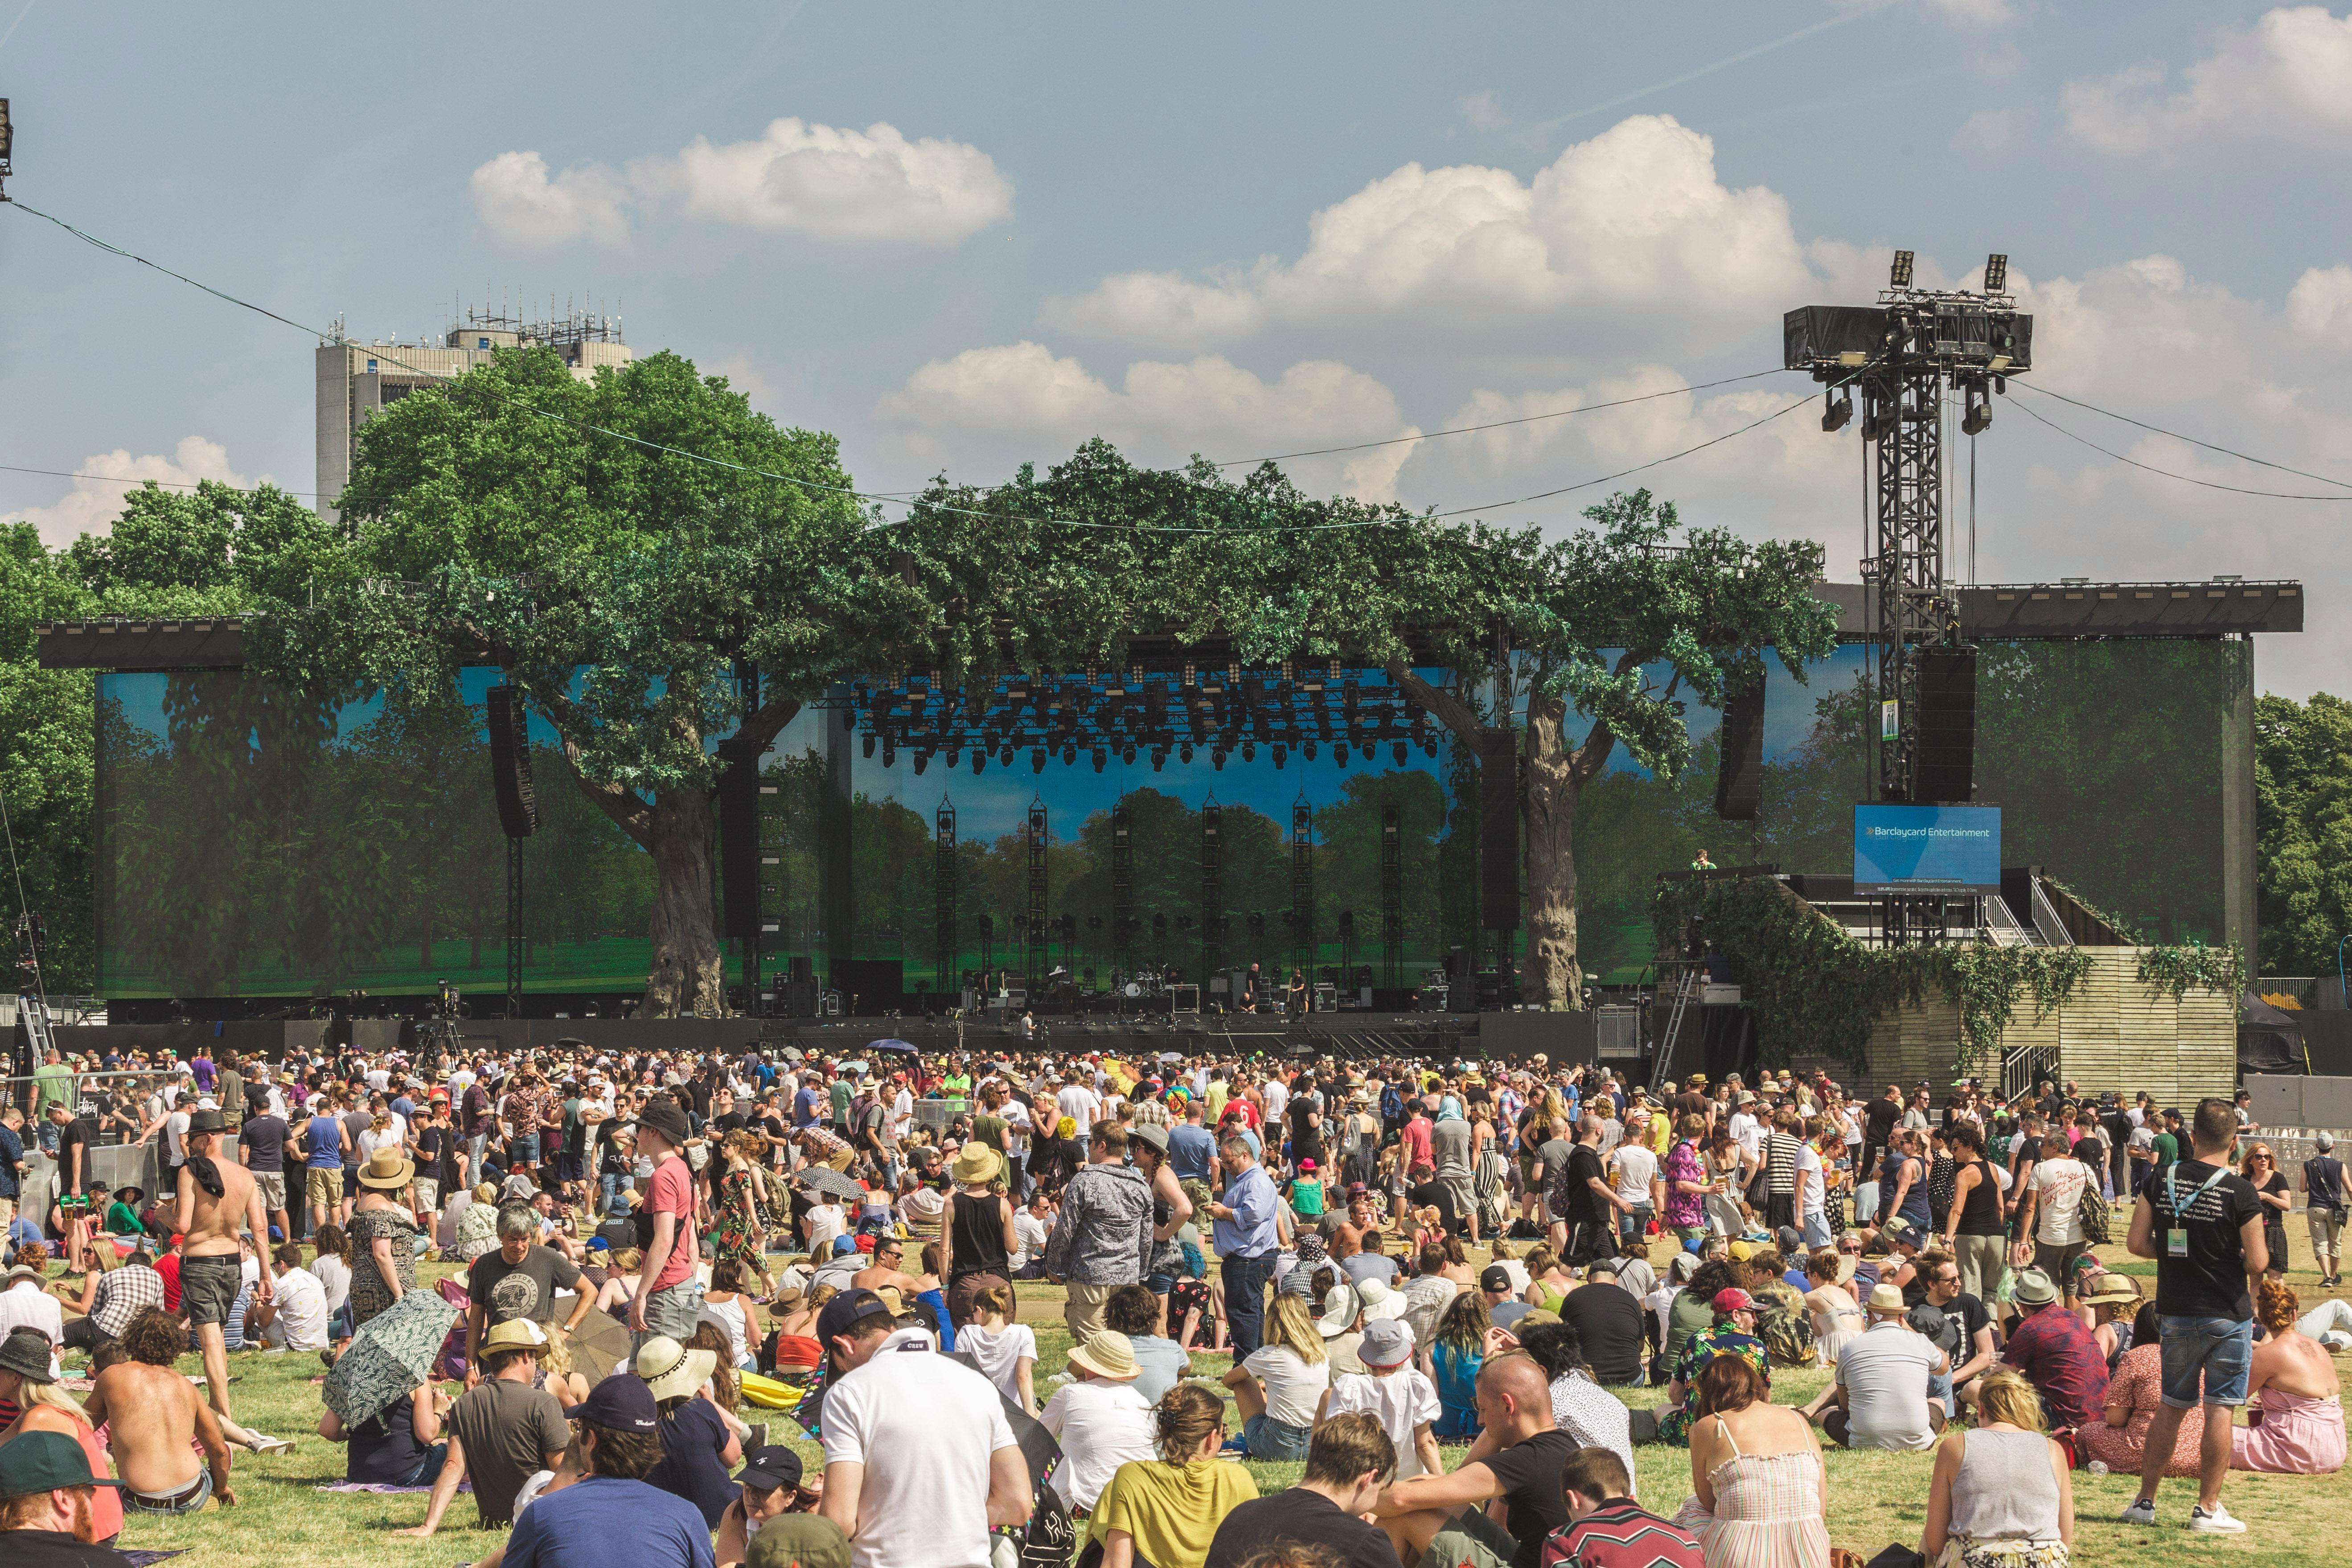 When is BST Hyde Park 2019, who else is performing with Barbra Streisand and how to get tickets?